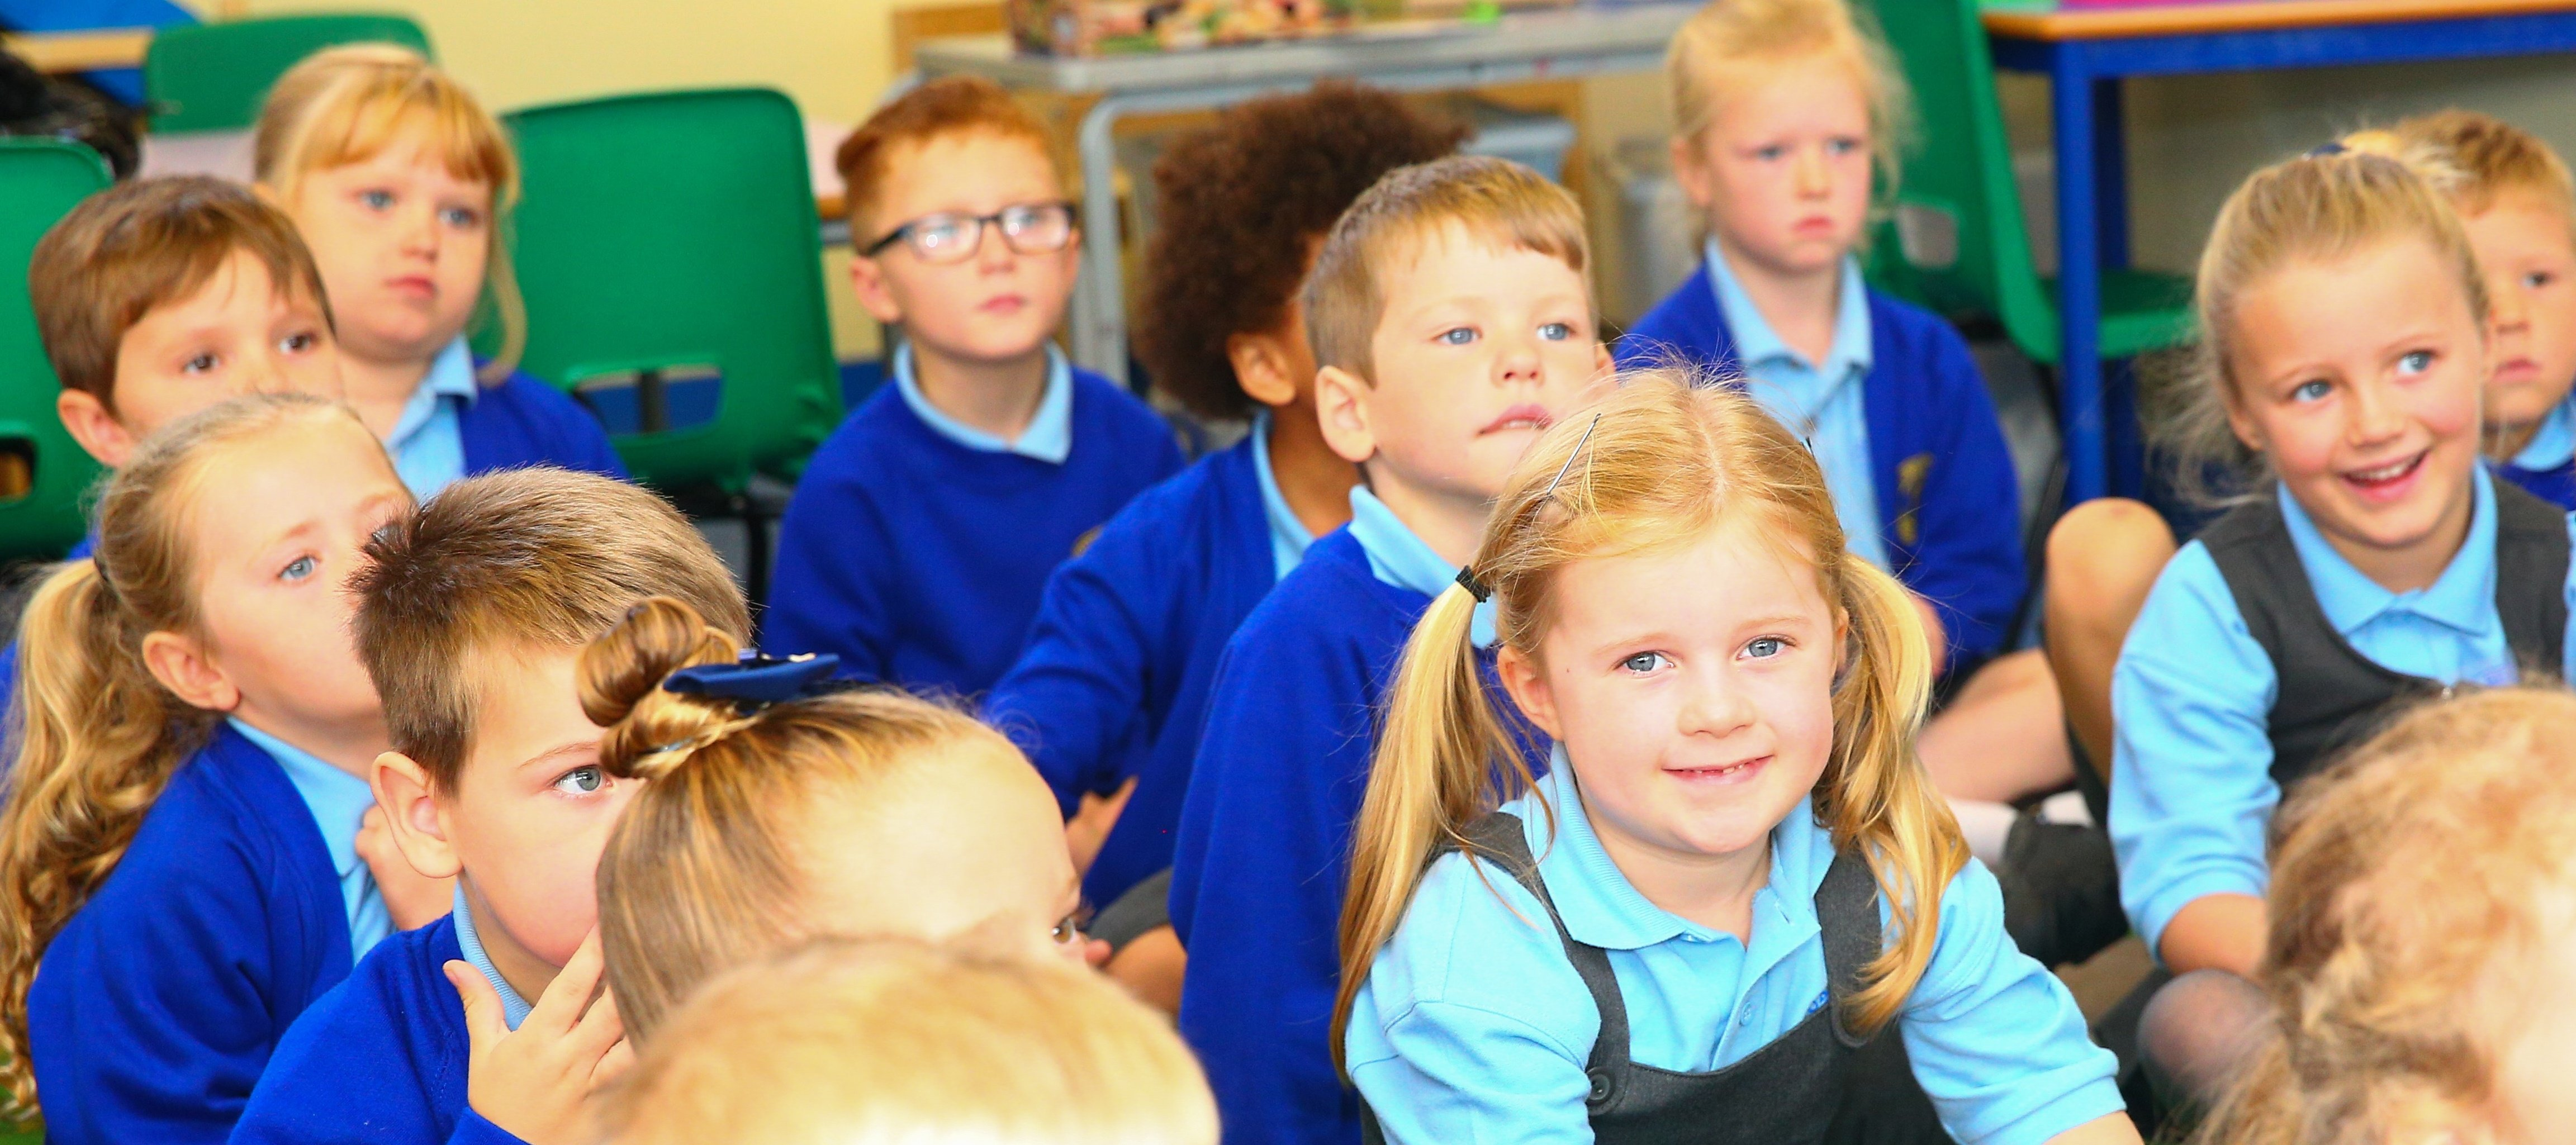 Our school is full of fun and laughter, and our children are guided to achieve their very best.